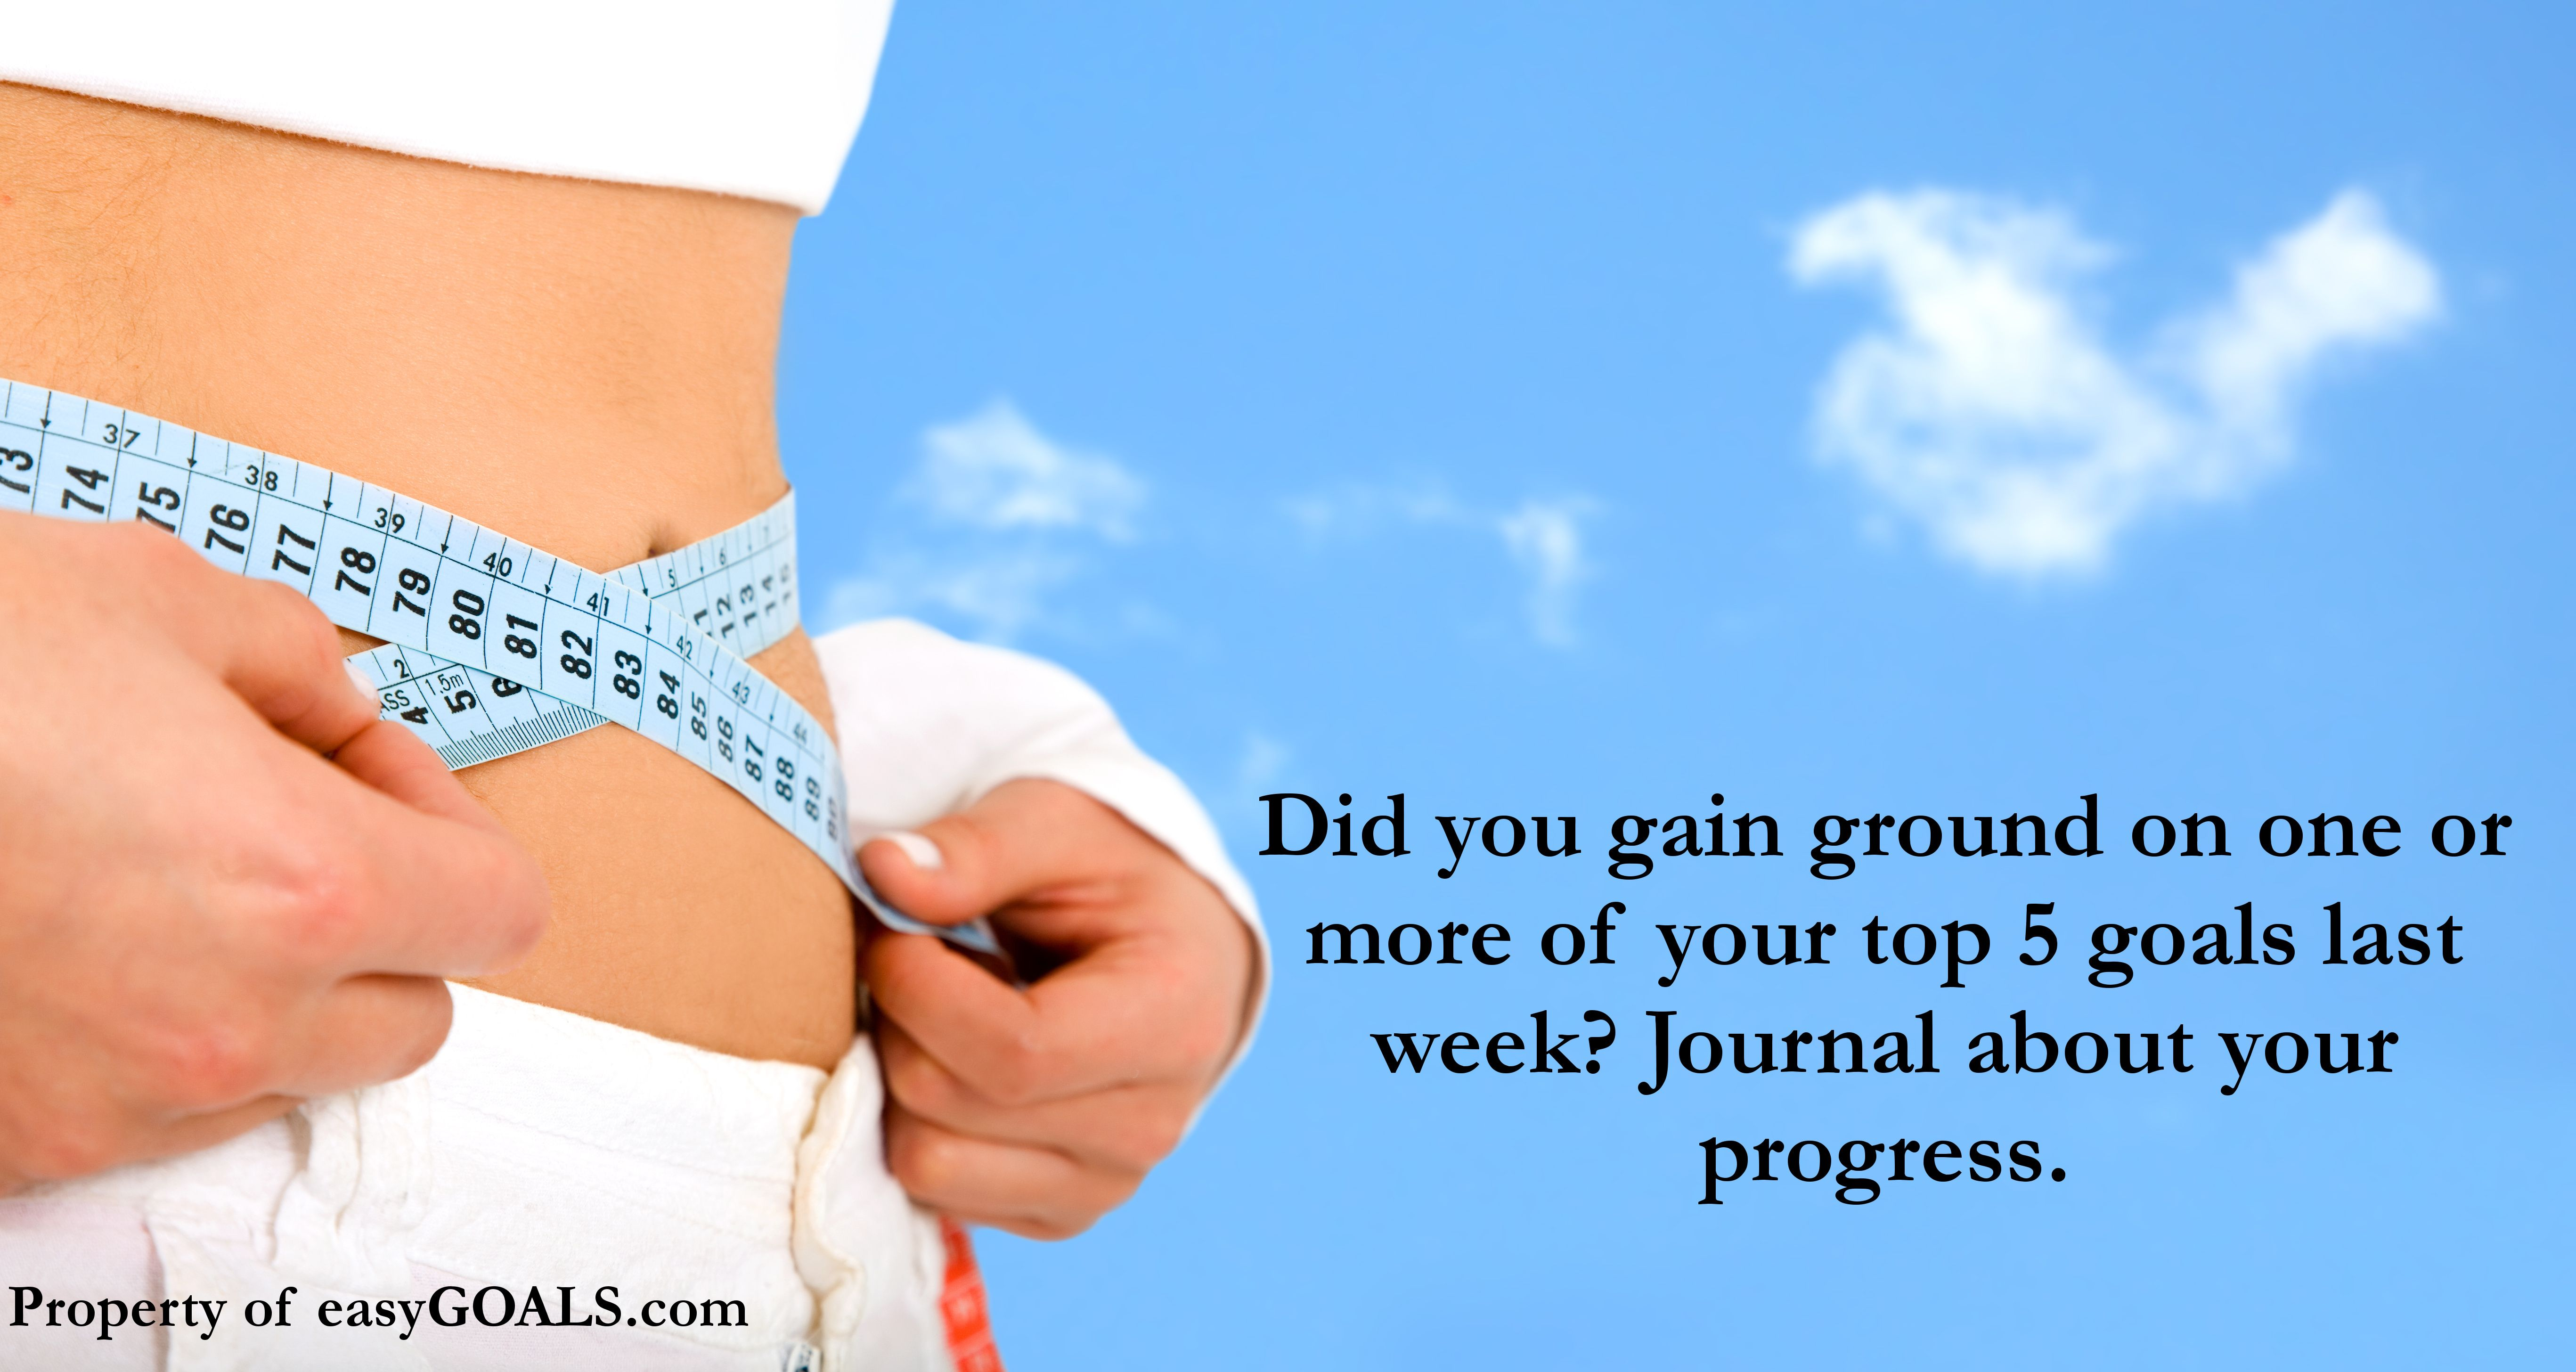 Did you gain ground on one or more of your top 5 goals last week? Journal about your progress. #easygoals #progress #goals #forward #dedication #goalsetting| http://easygoals.com/